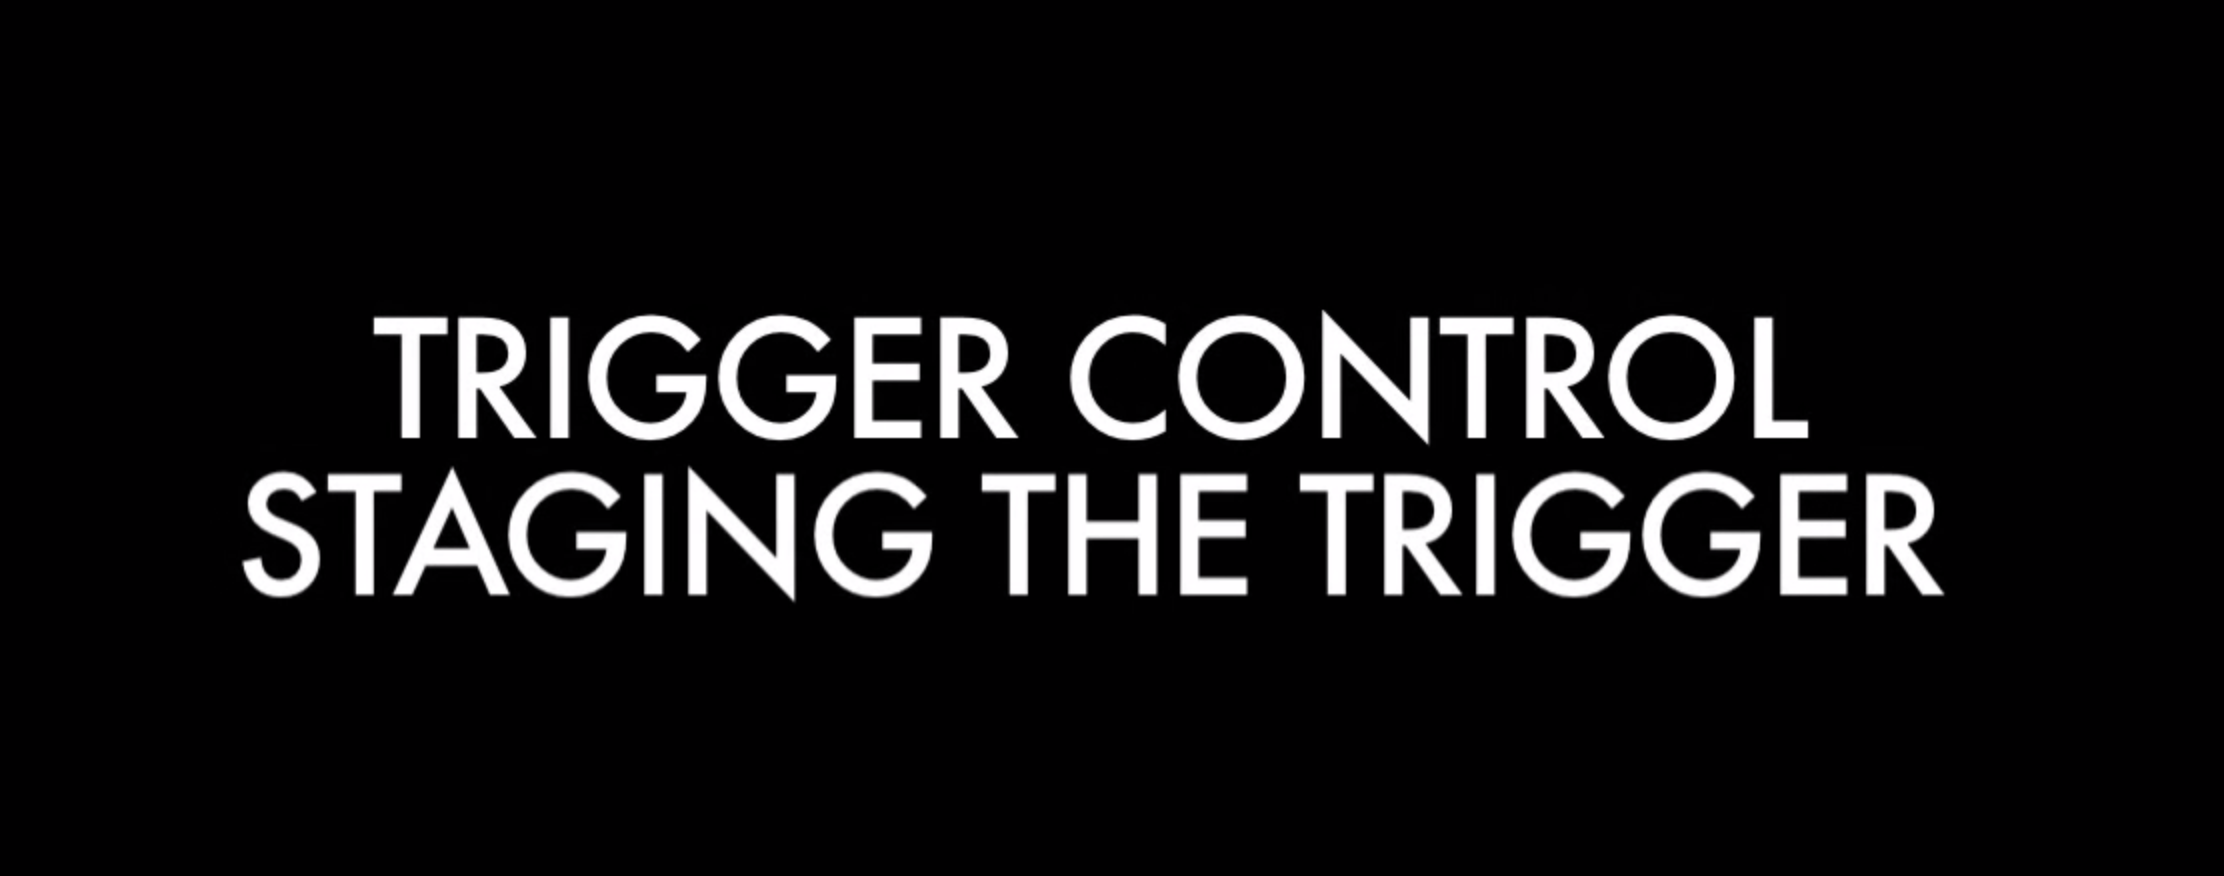 Stagging the Trigger